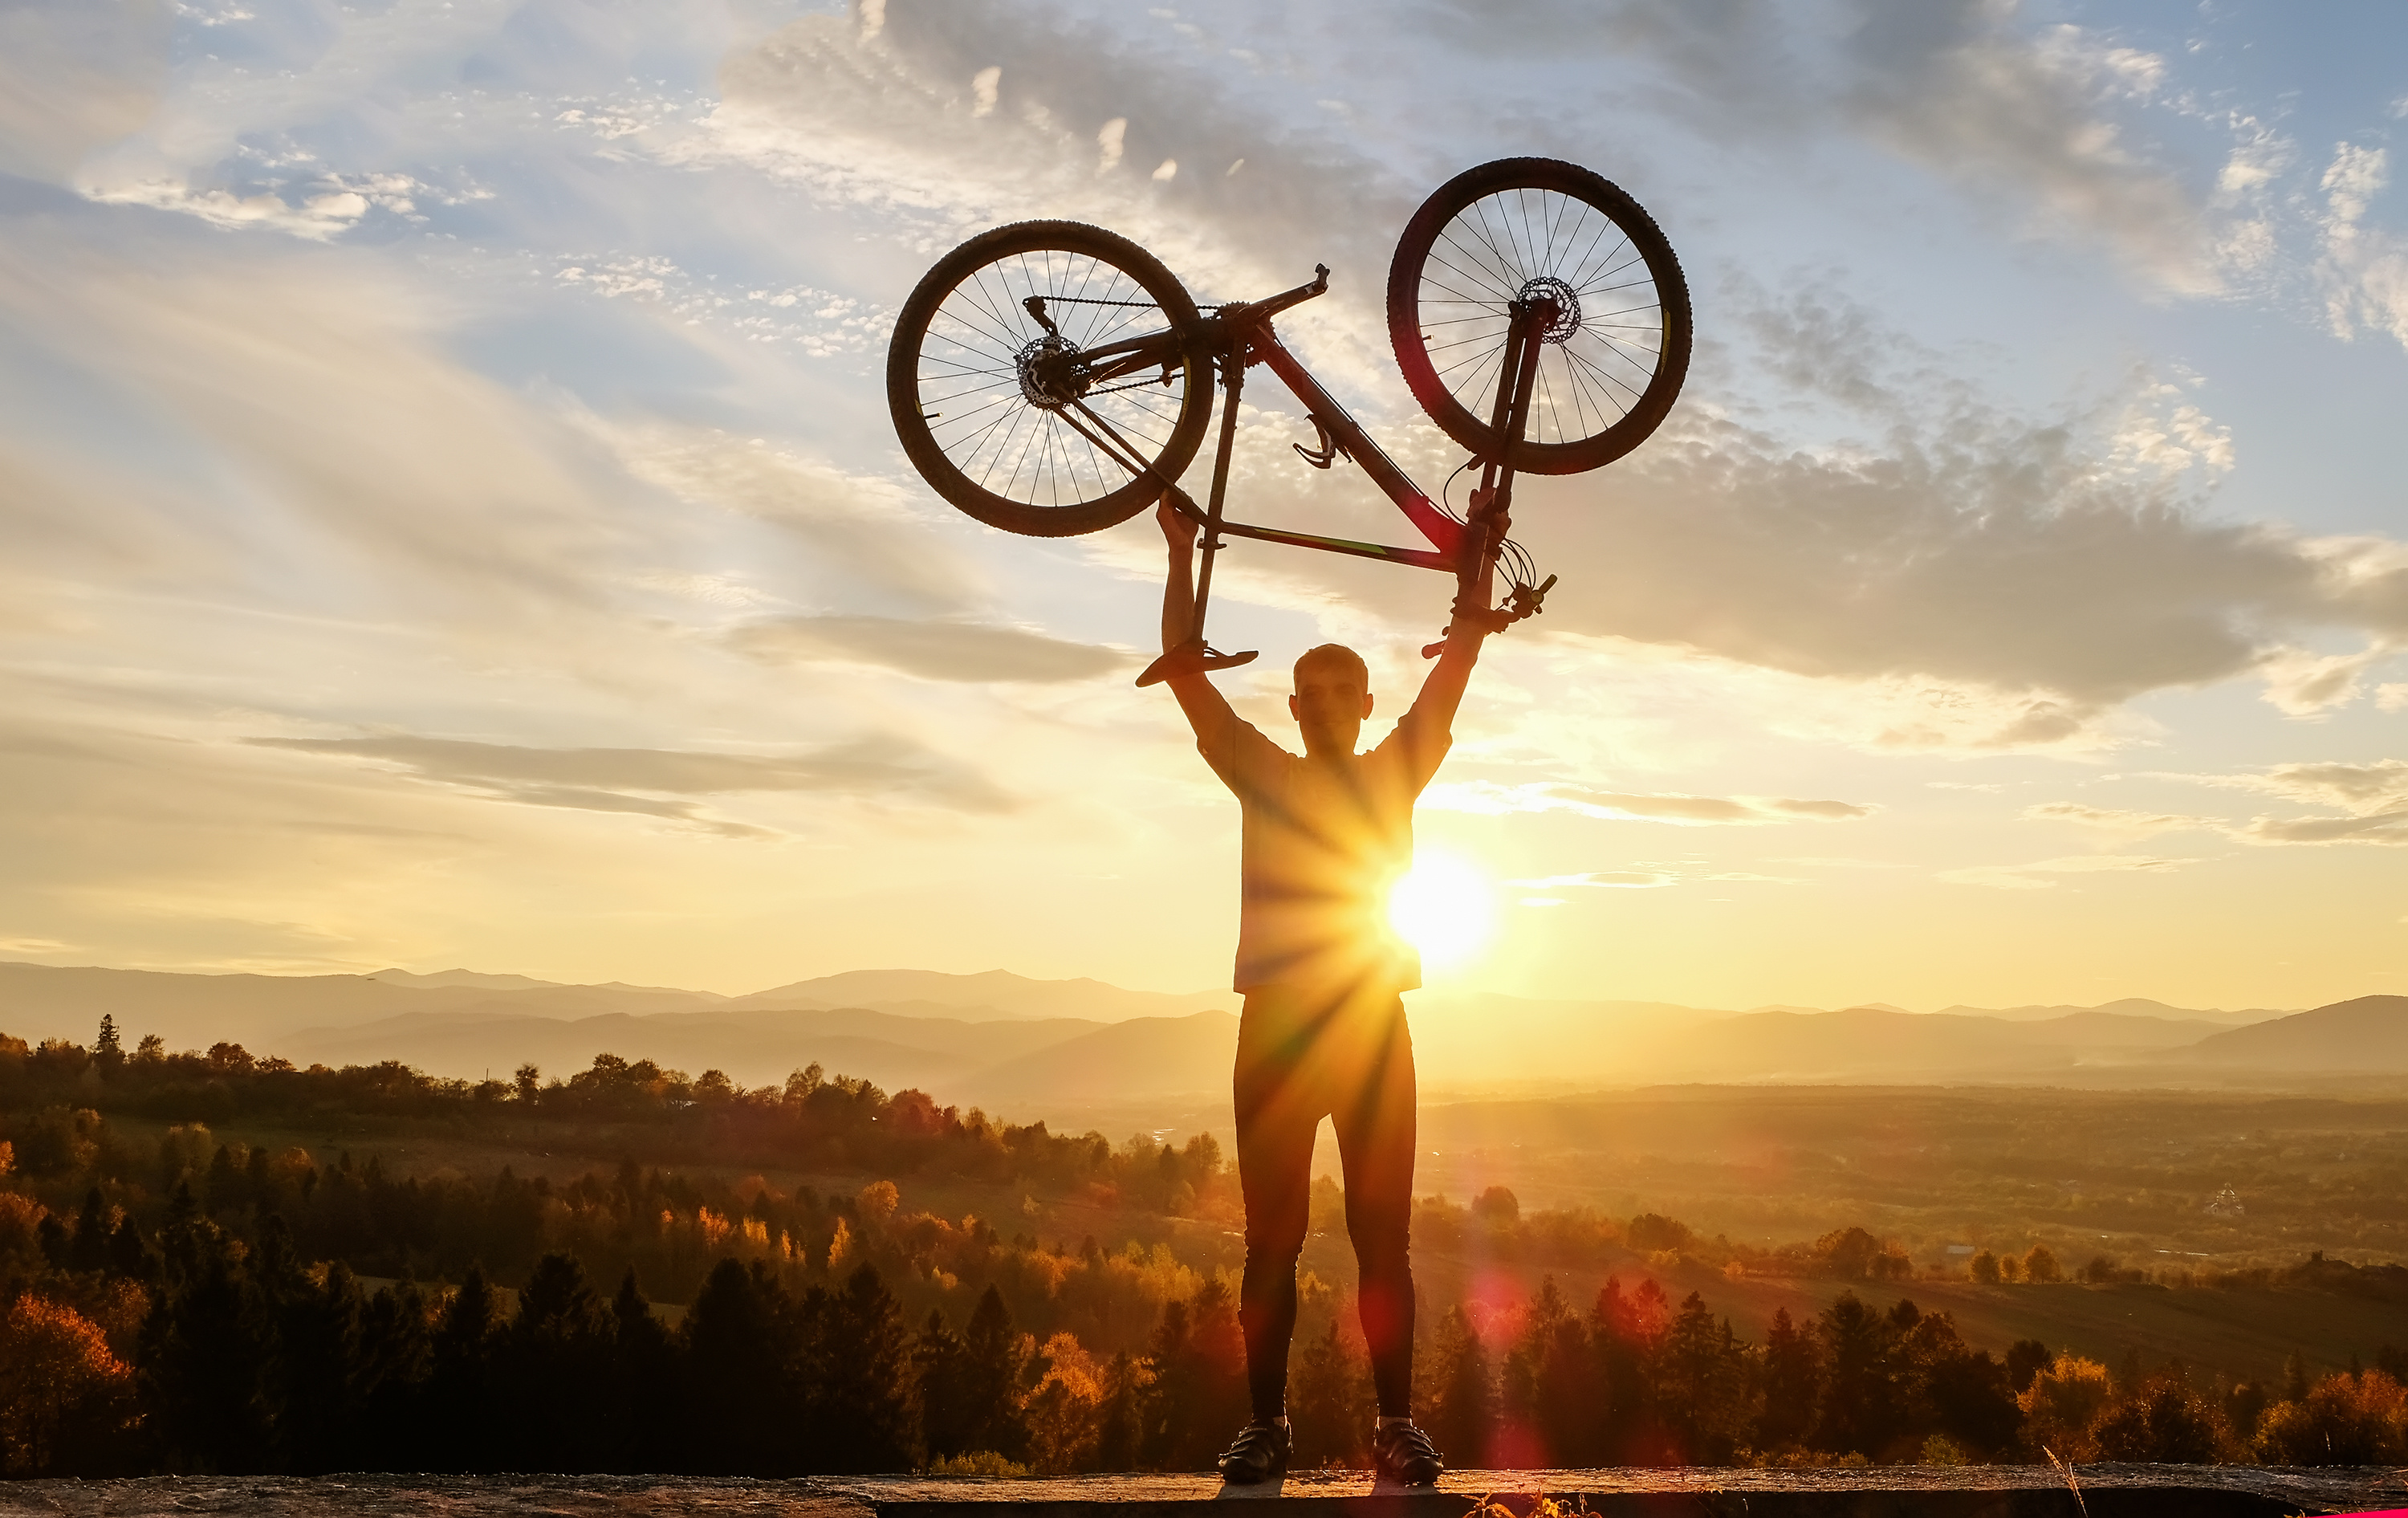 Man holding a bicycle above his head in front of a sunset